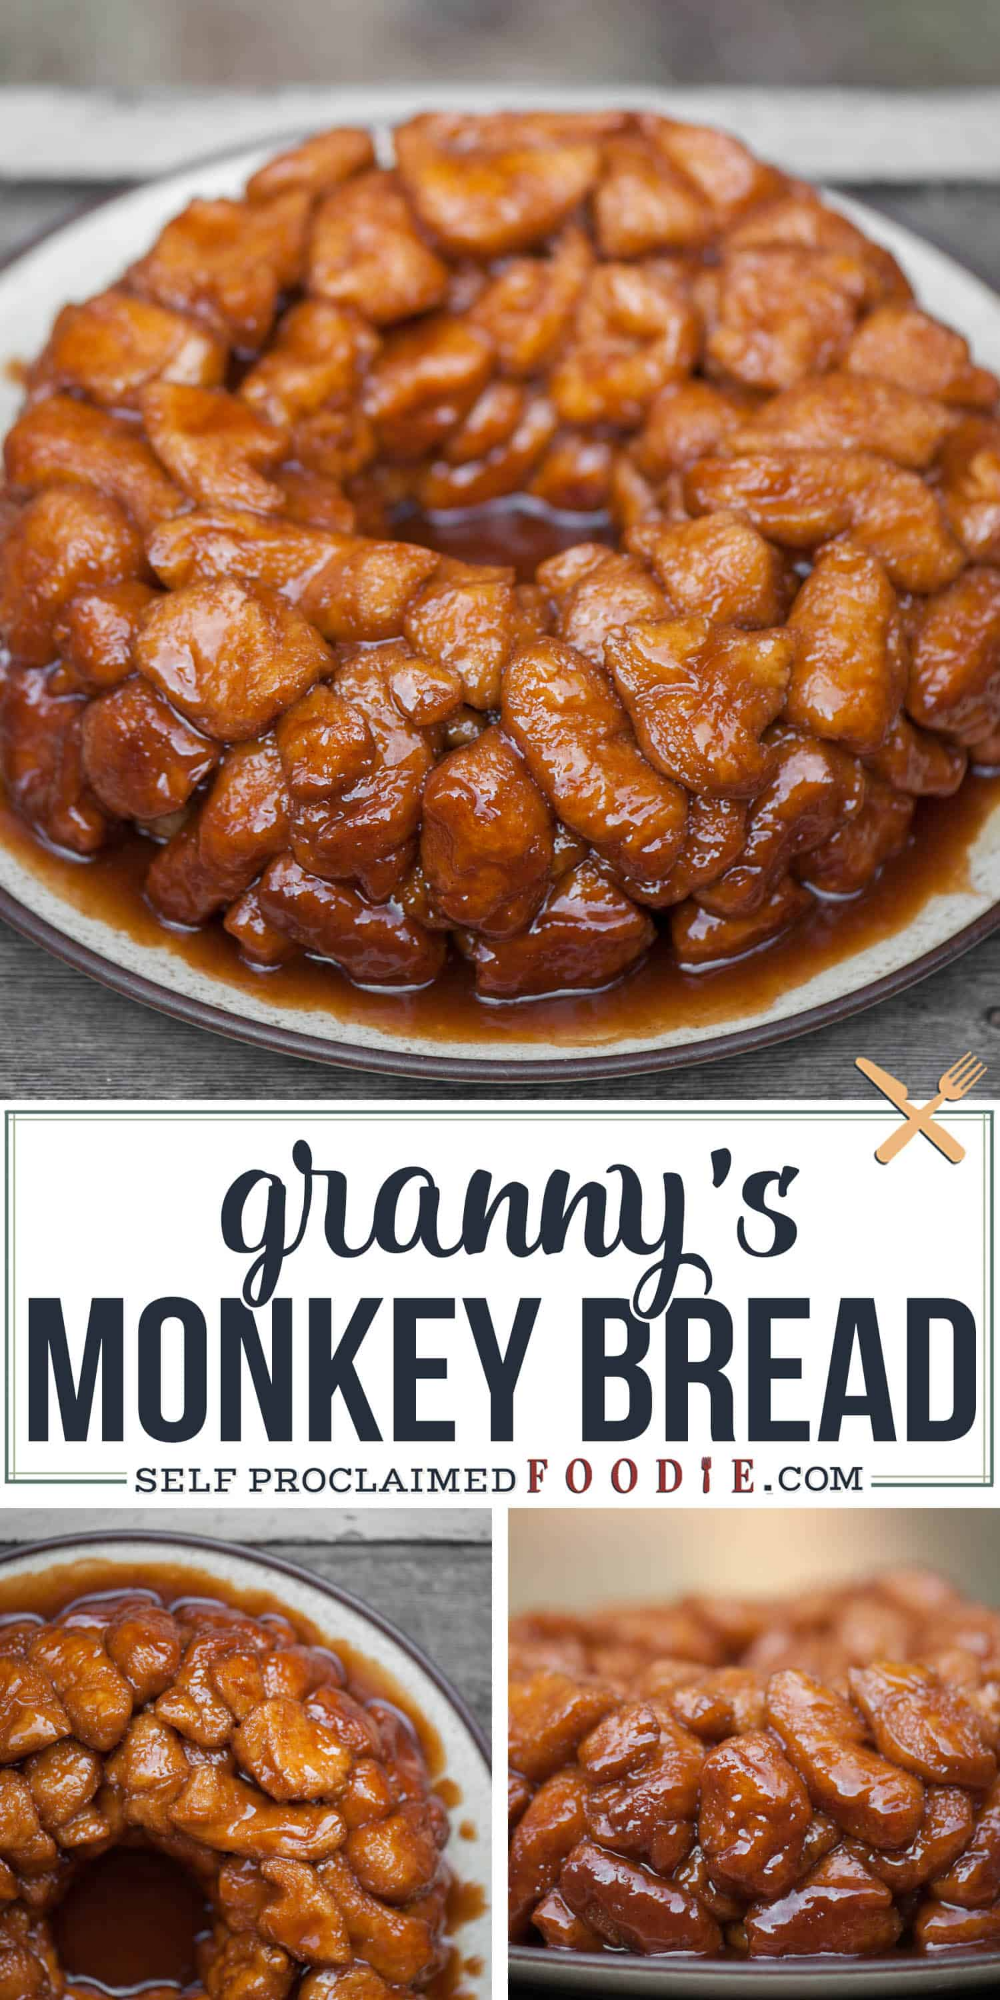 Granny's Monkey Bread Recipe | Self Proclaimed Foodie